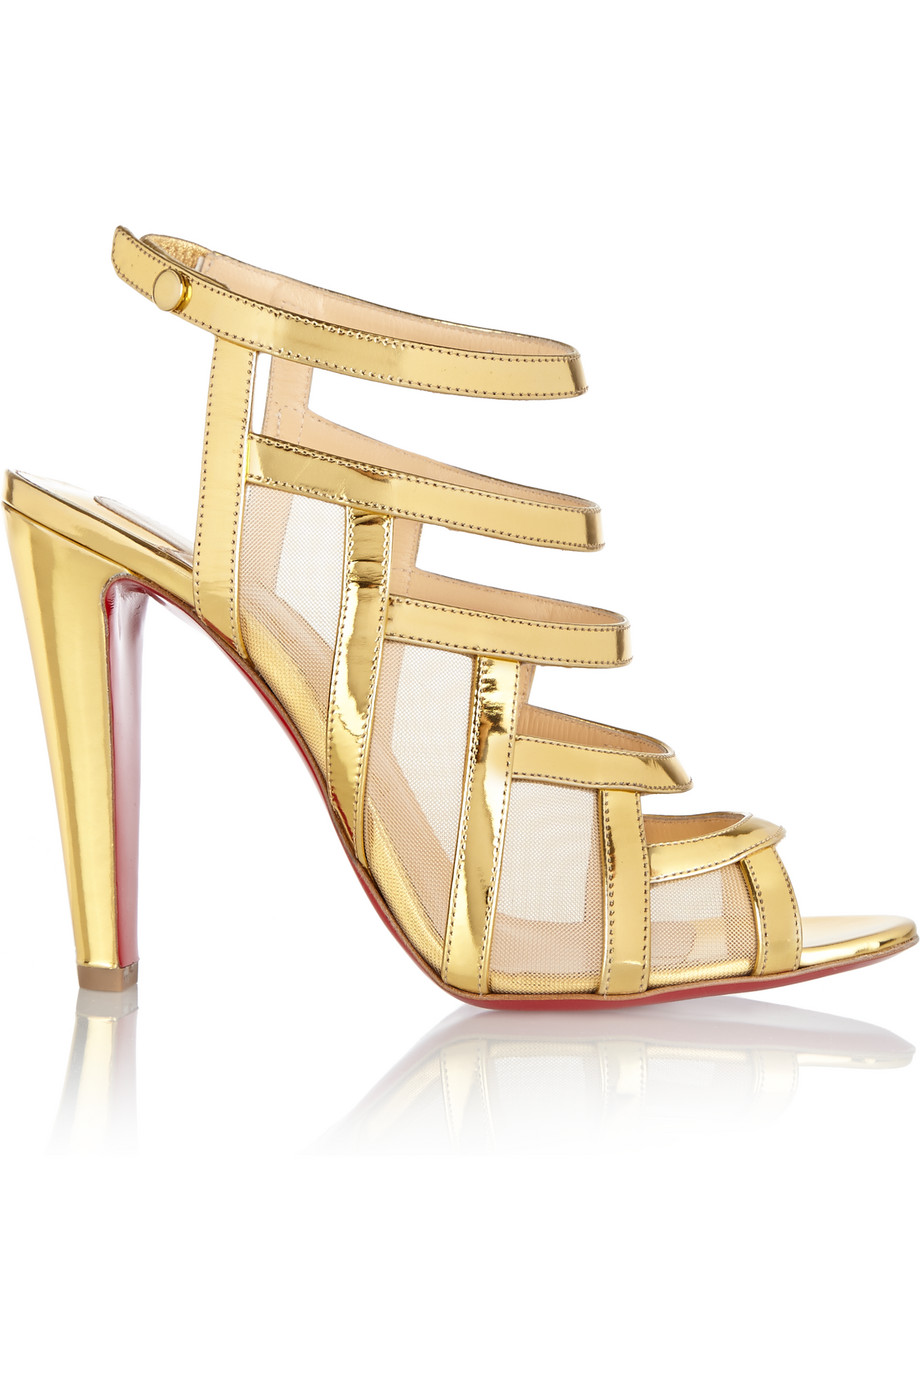 Christian Louboutin Nicobar 100 Leather and Mesh Sandals, Gold, Women's US Size: 8.5, Size: 39